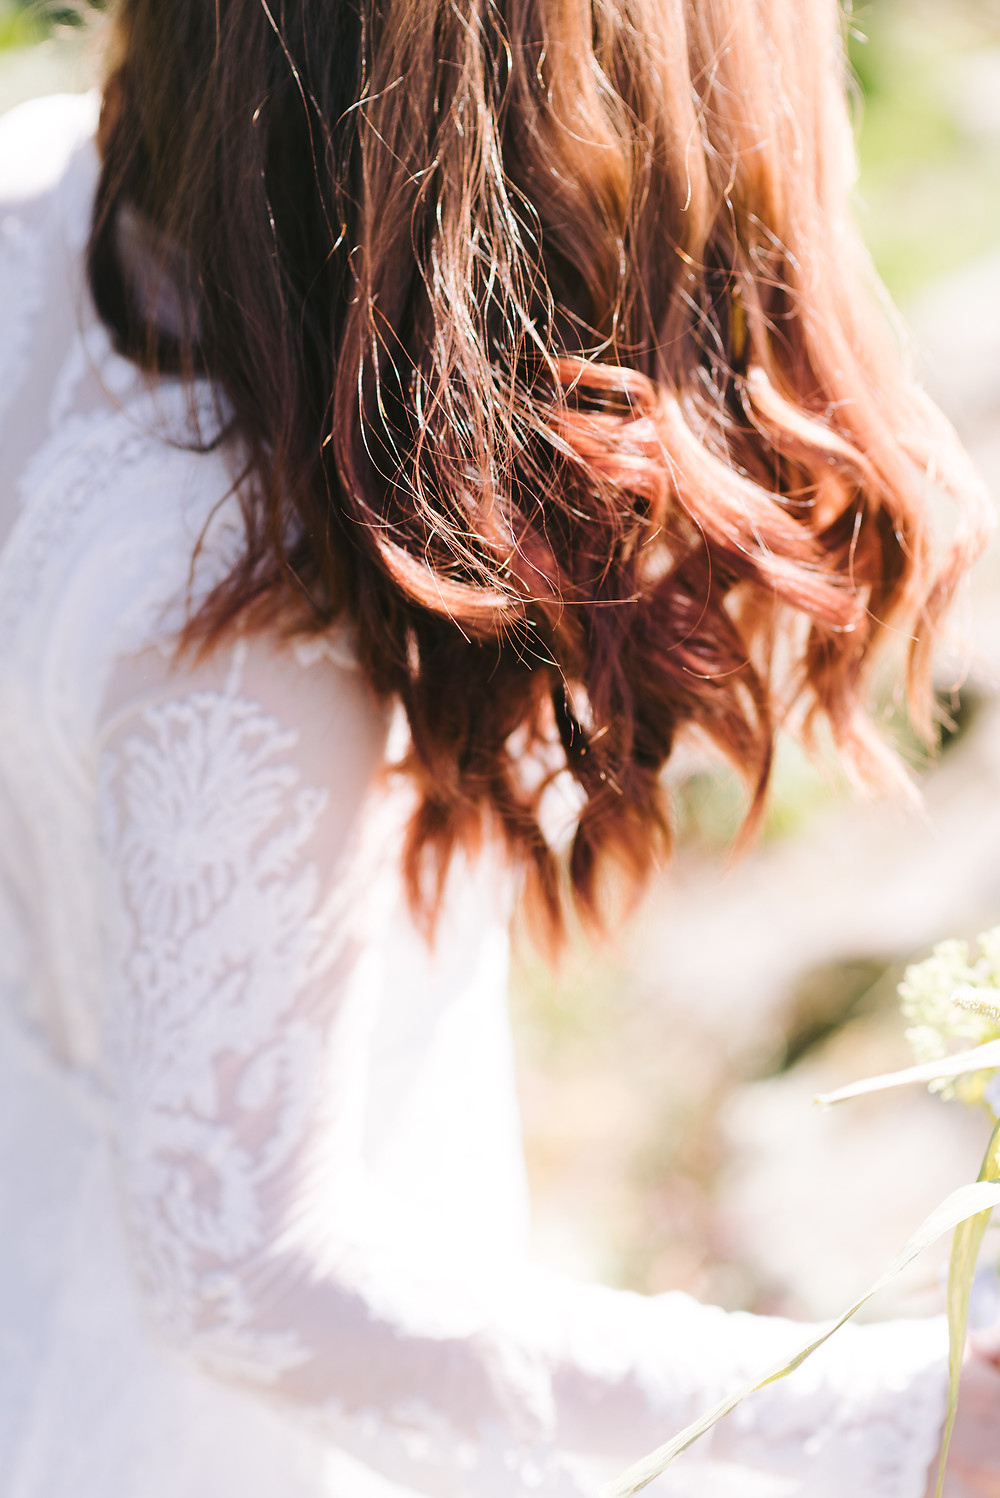 The bride's beautiful red hair glistening in the sun.